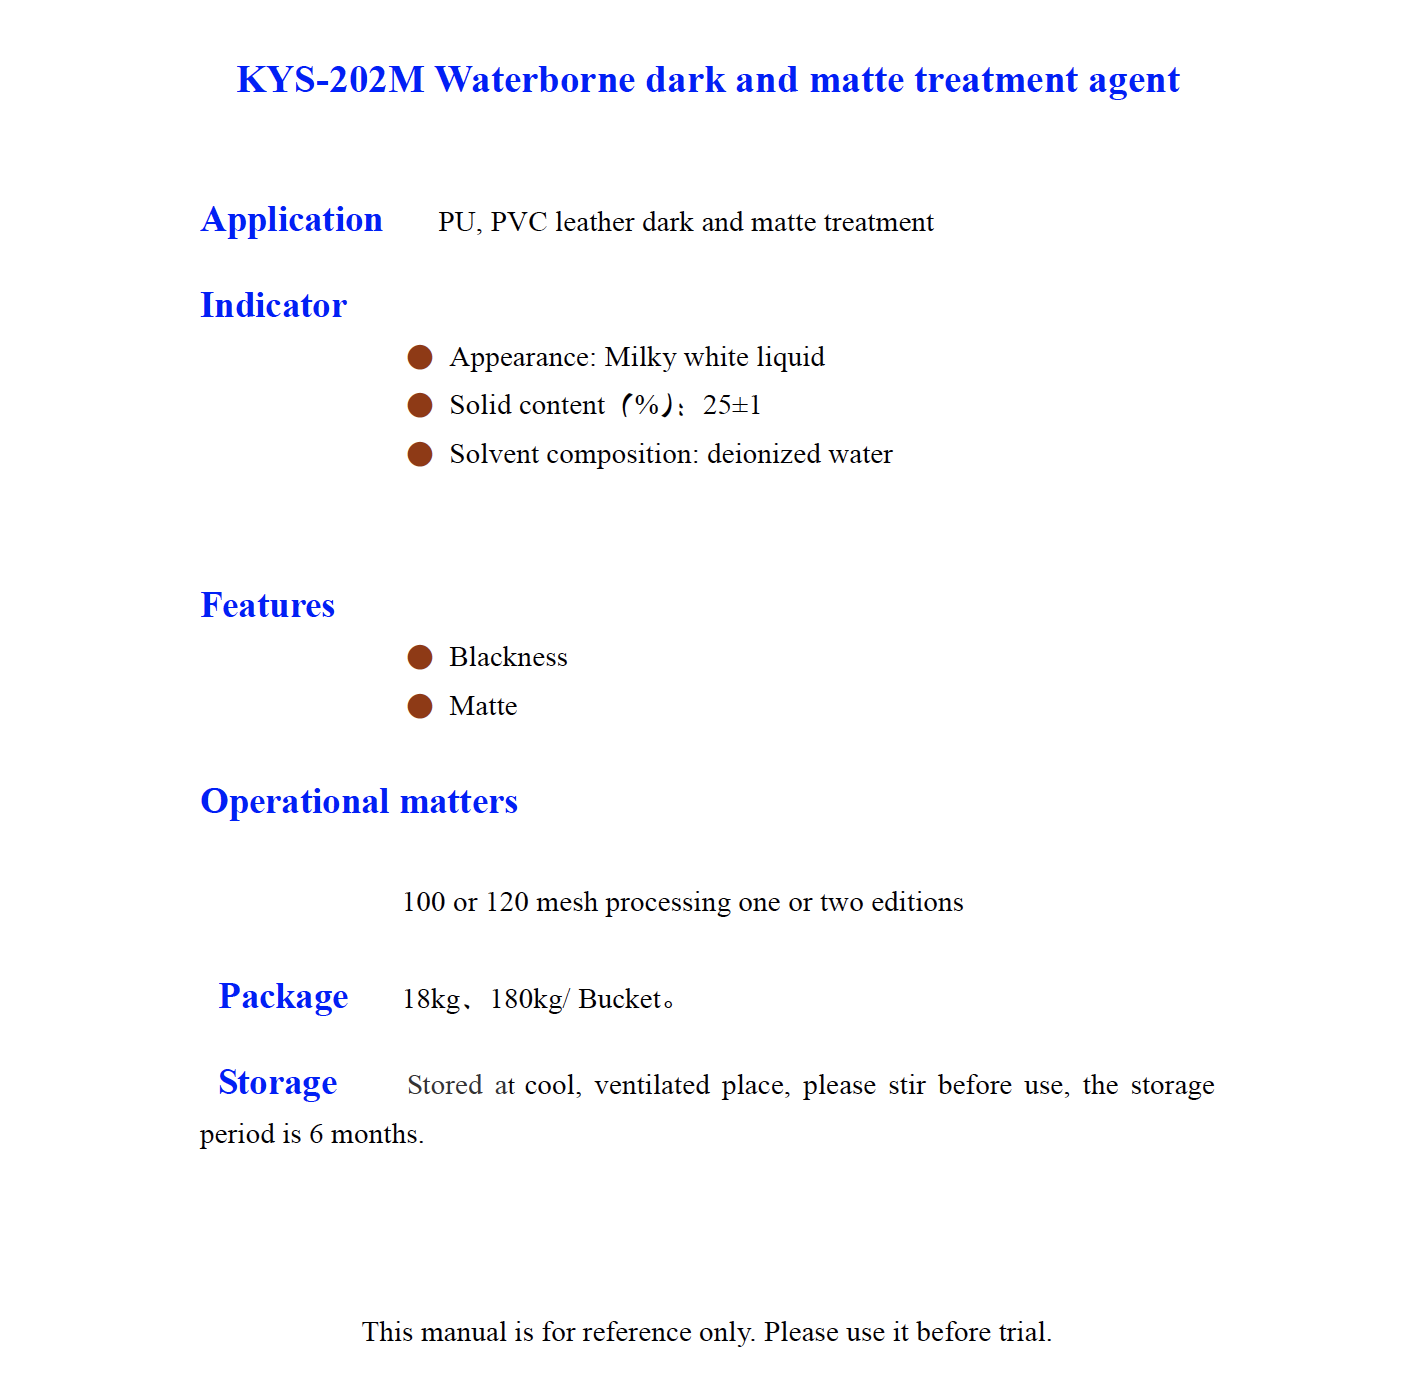 KYS 202M Waterborne dark and matte treatment agent